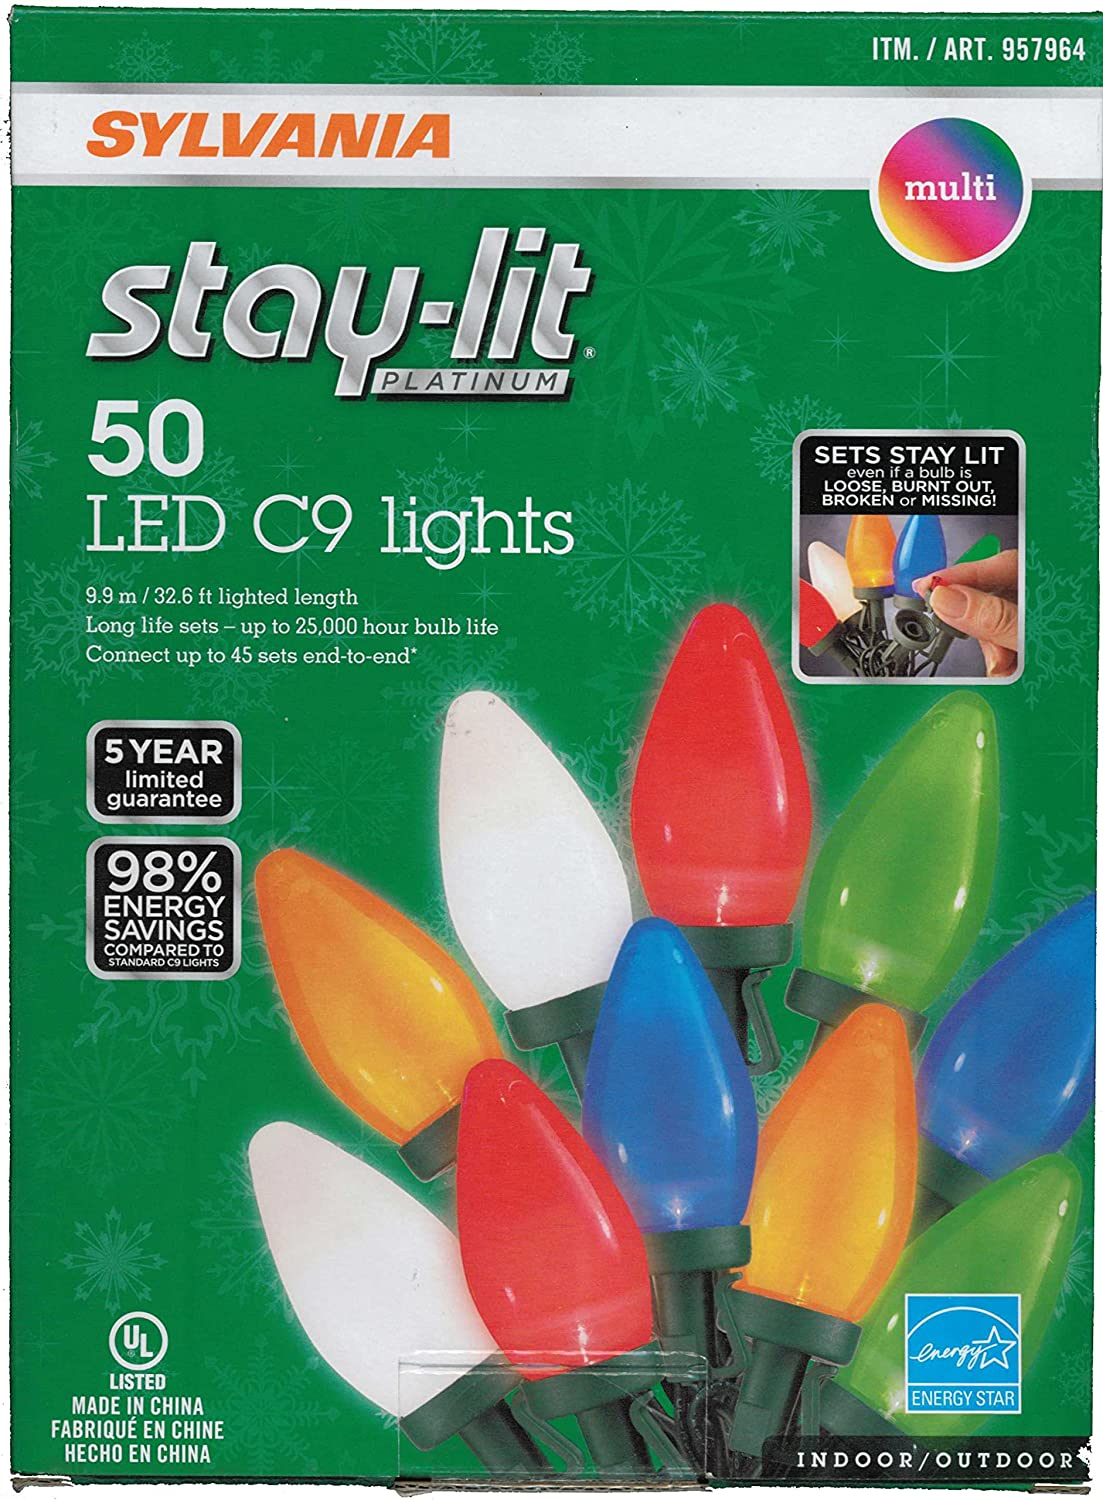 amazoncom sylvania staylit led faceted c9 lights 50 home improvement